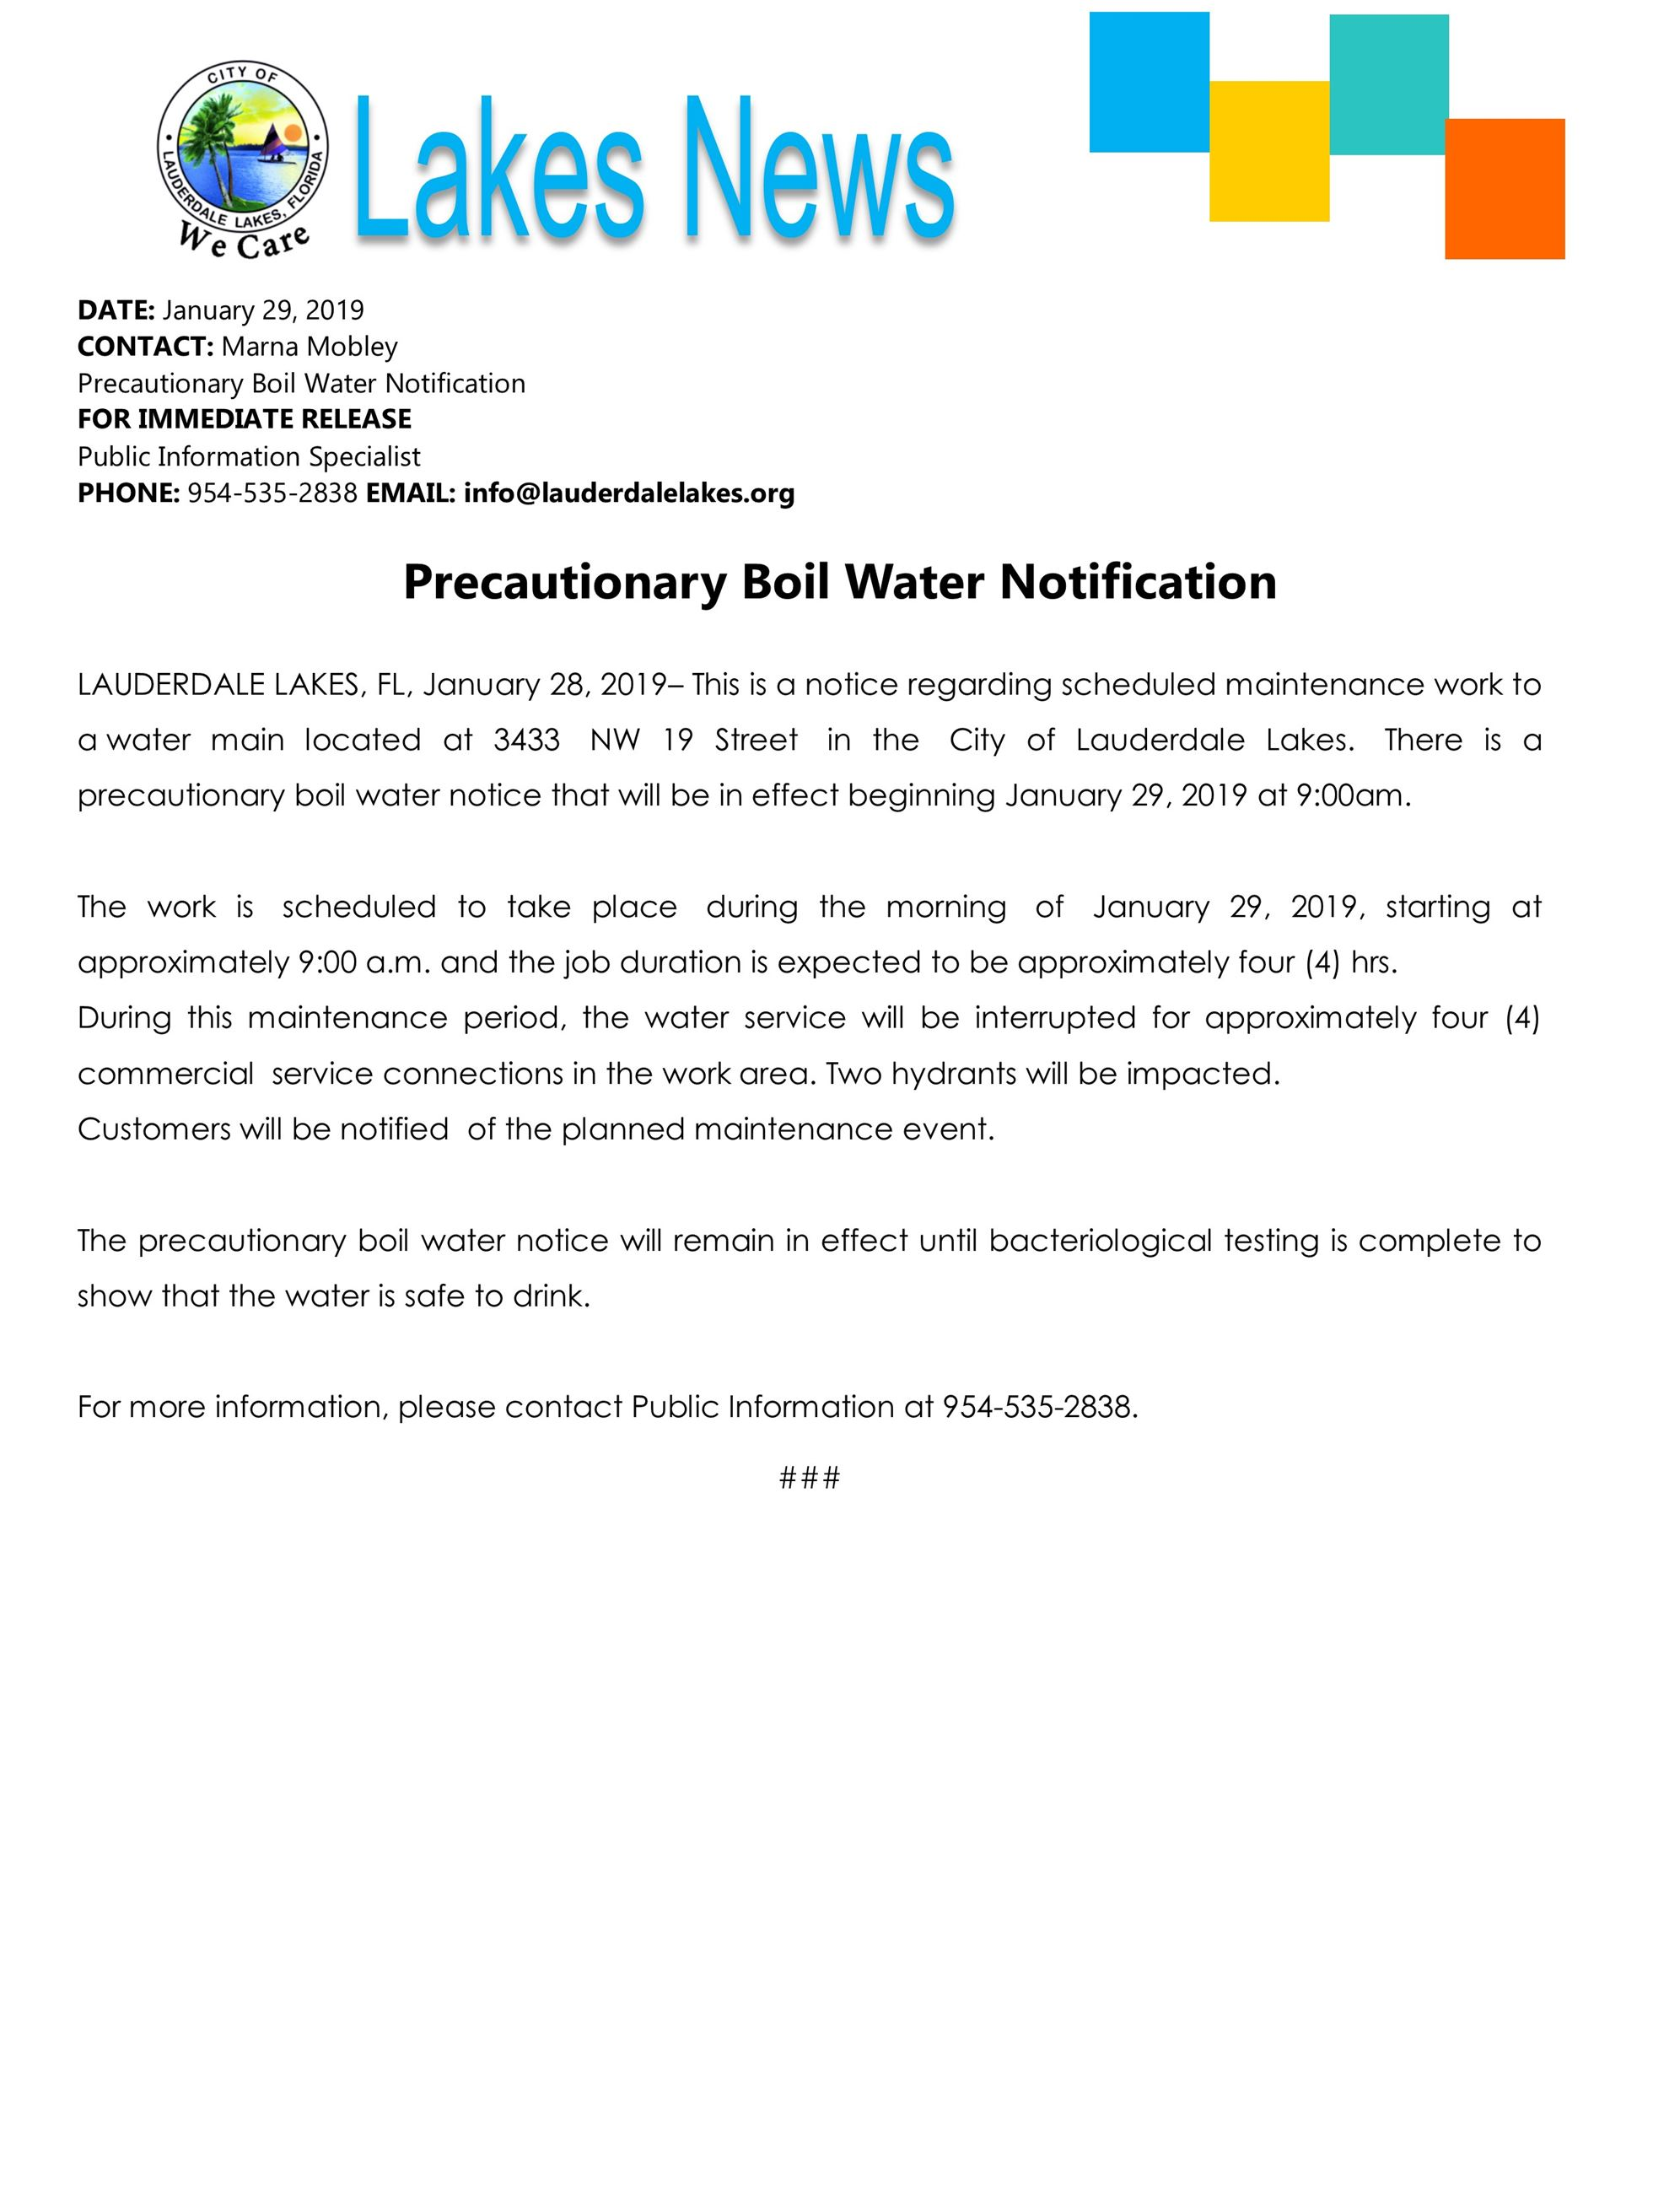 Press. precautionary boil water notice